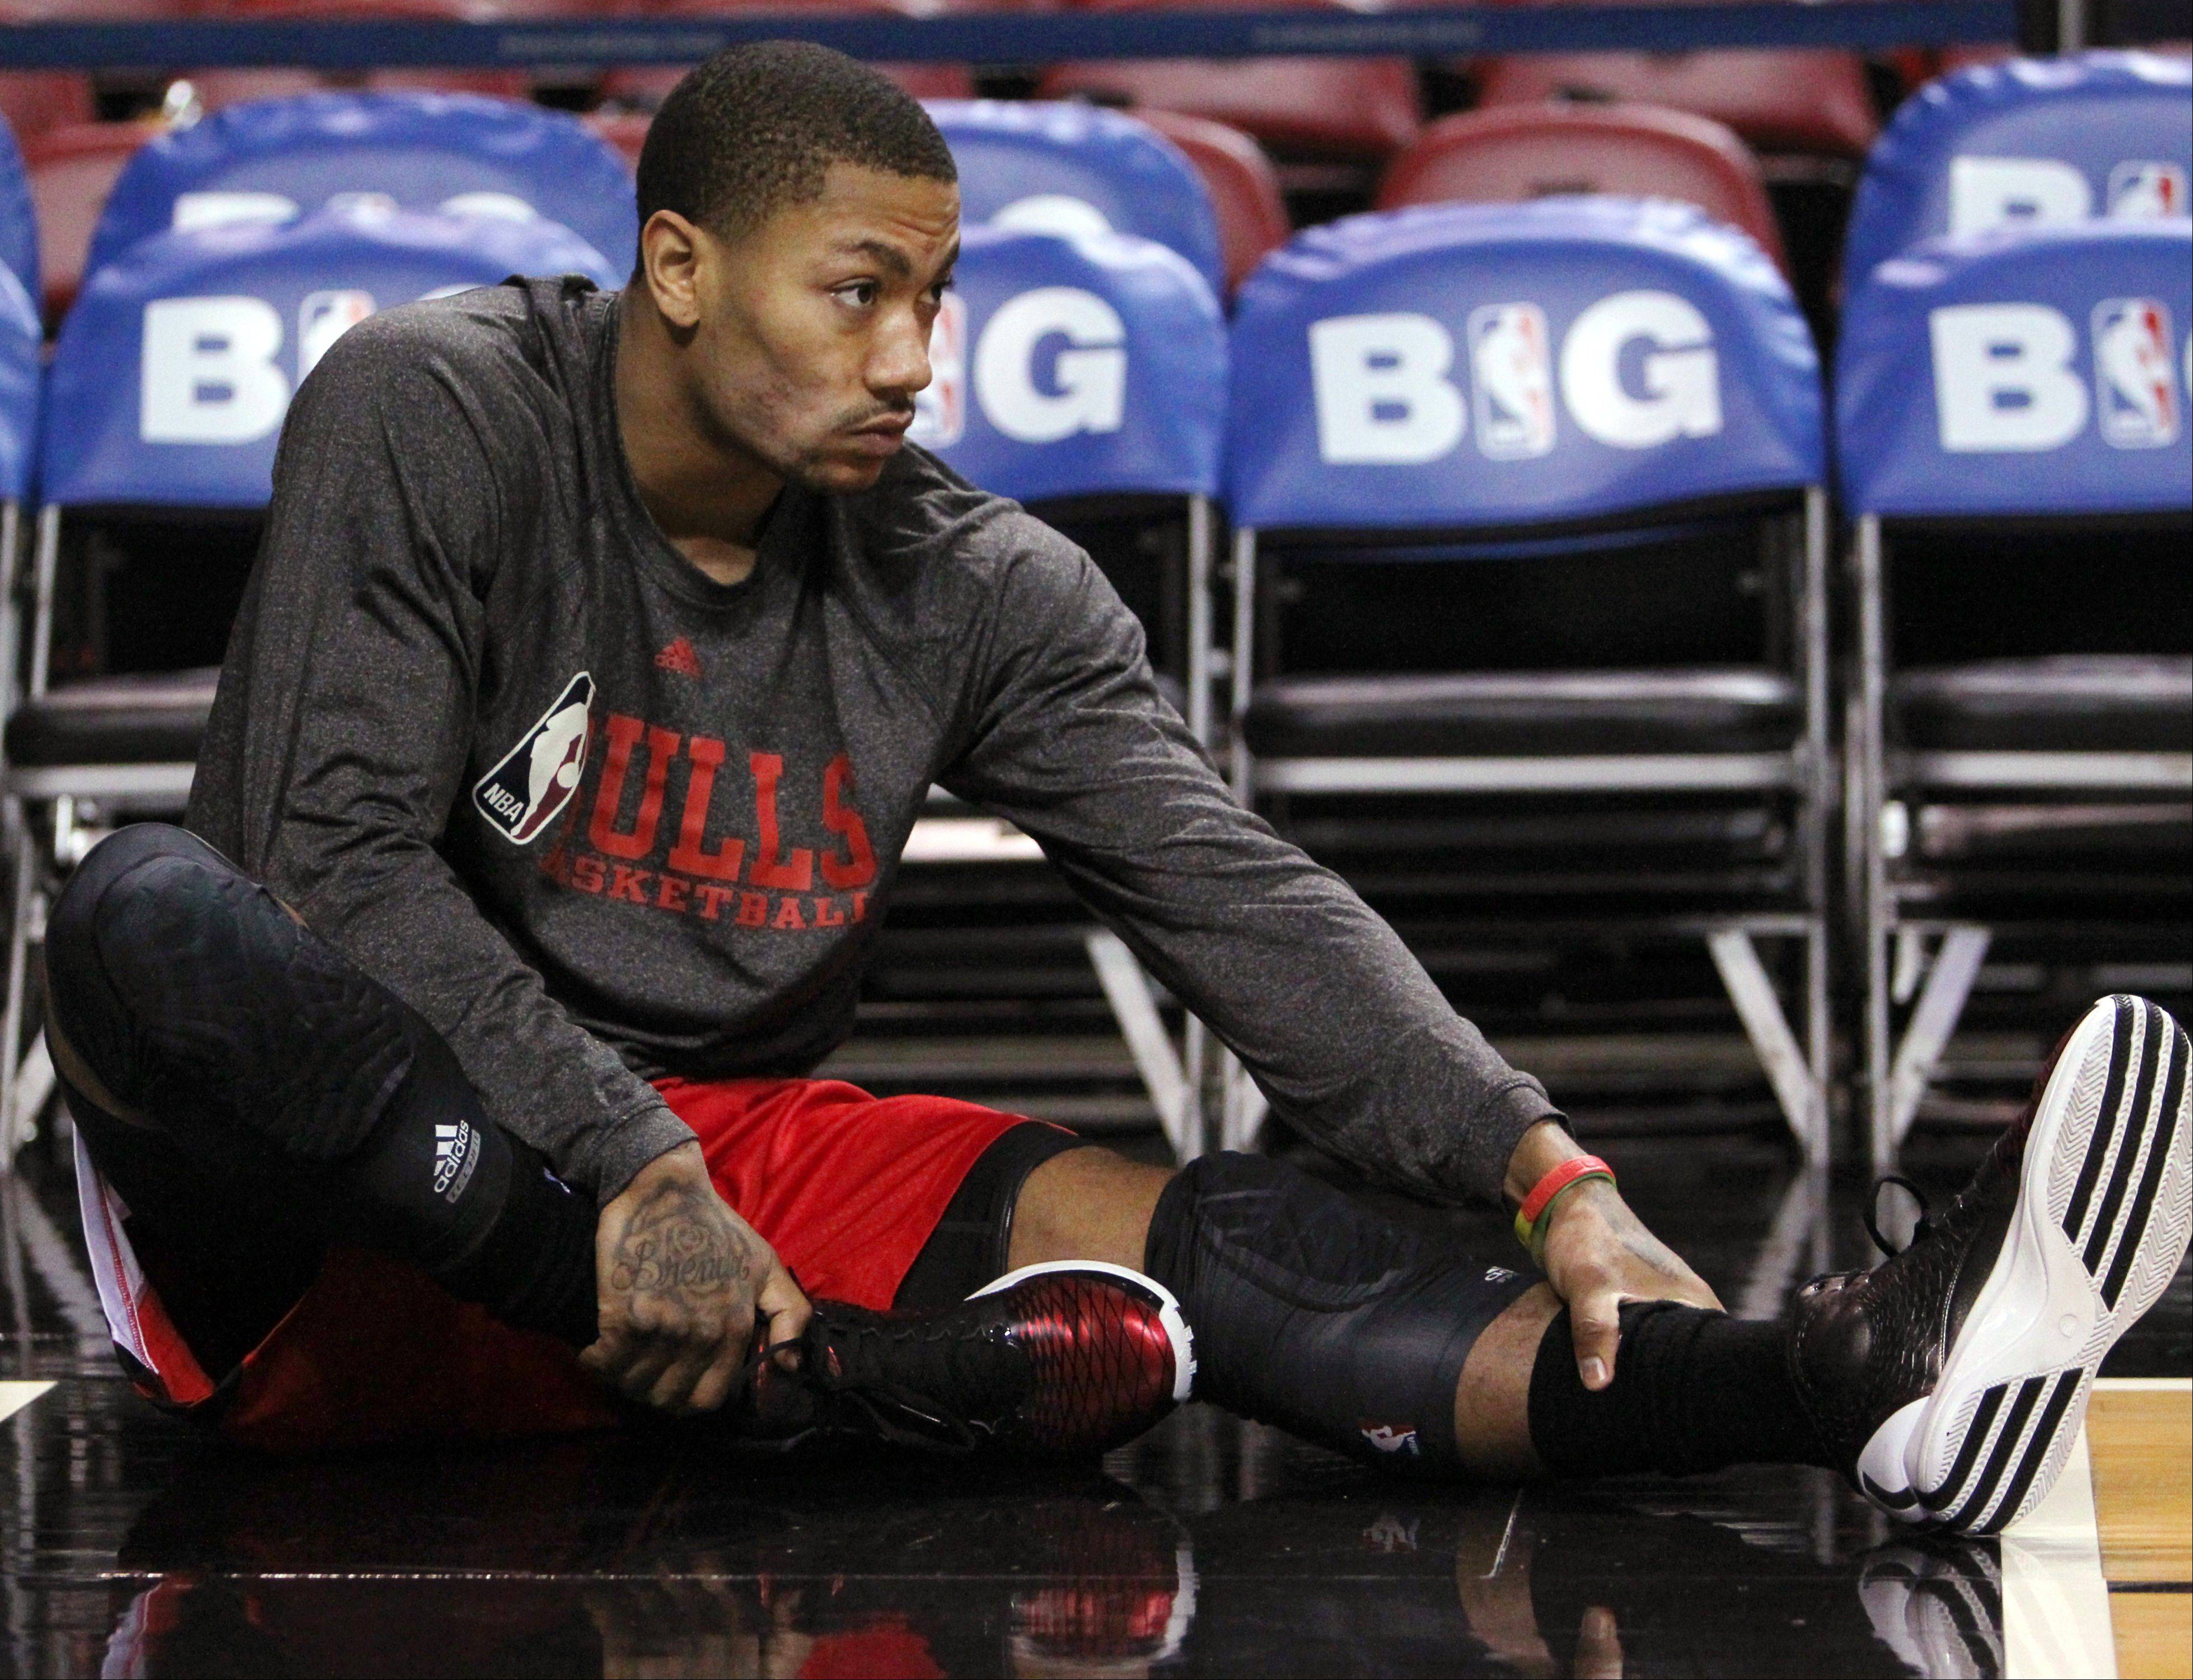 Derrick Rose stretches before the Bulls fell to the Heat 105-93 in Miami on Sunday afternoon. Having Rose return this season doesn't make much sense at this point, according to Daily Herald columnist Barry Rozner.